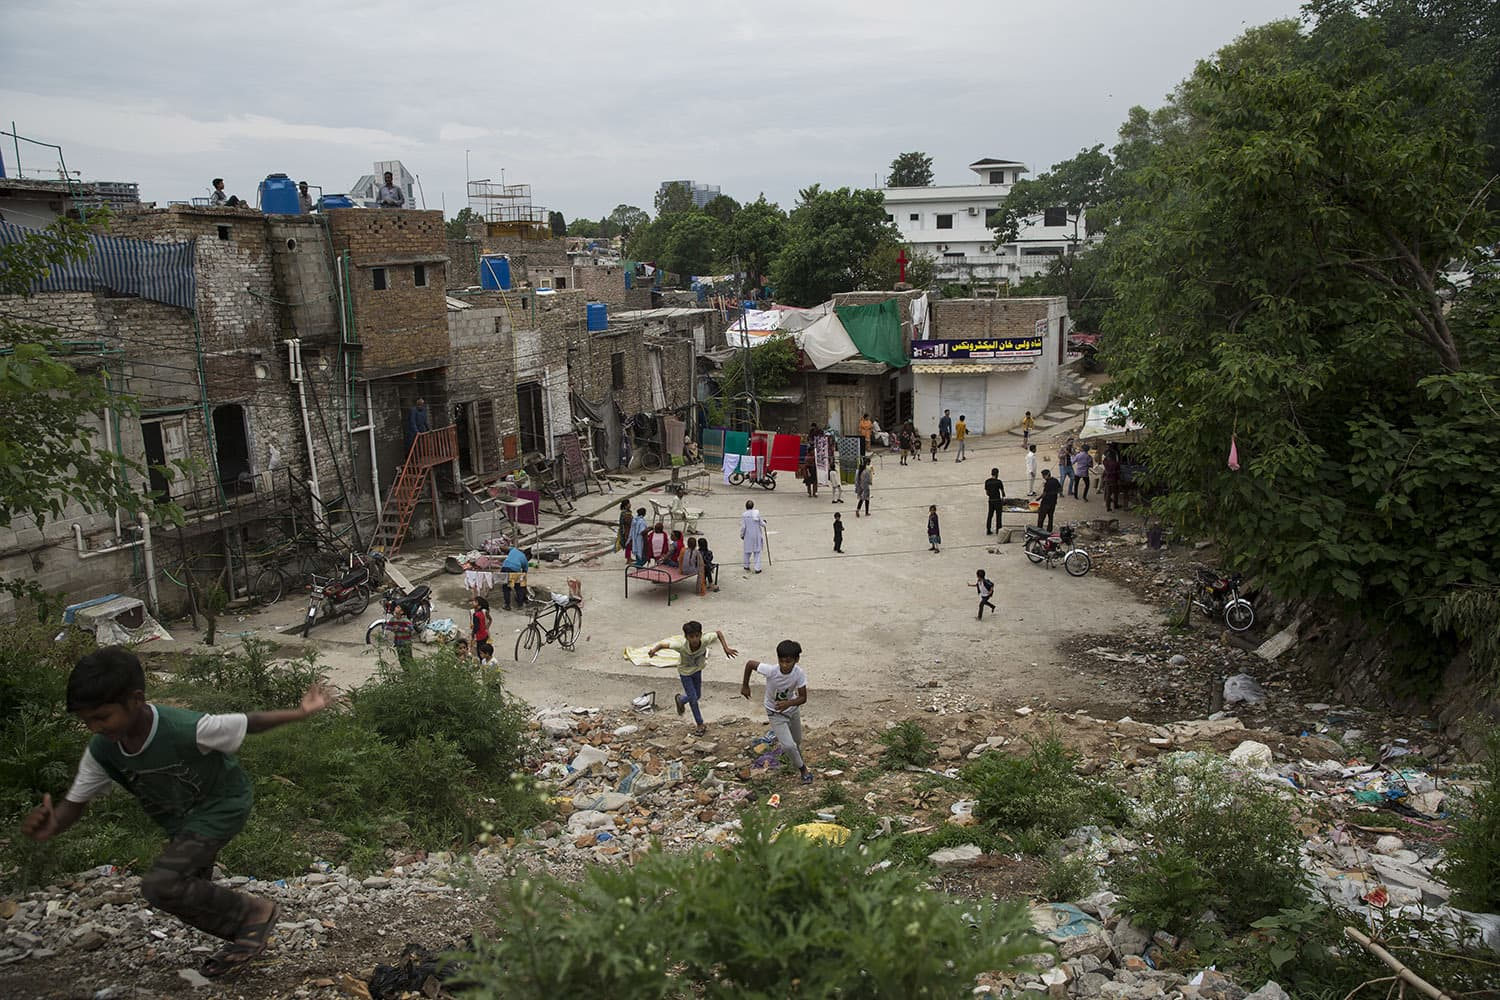 Children play in French colony, an urban slum that primarily houses the Christian community, May 3, 2020, in Islamabad.